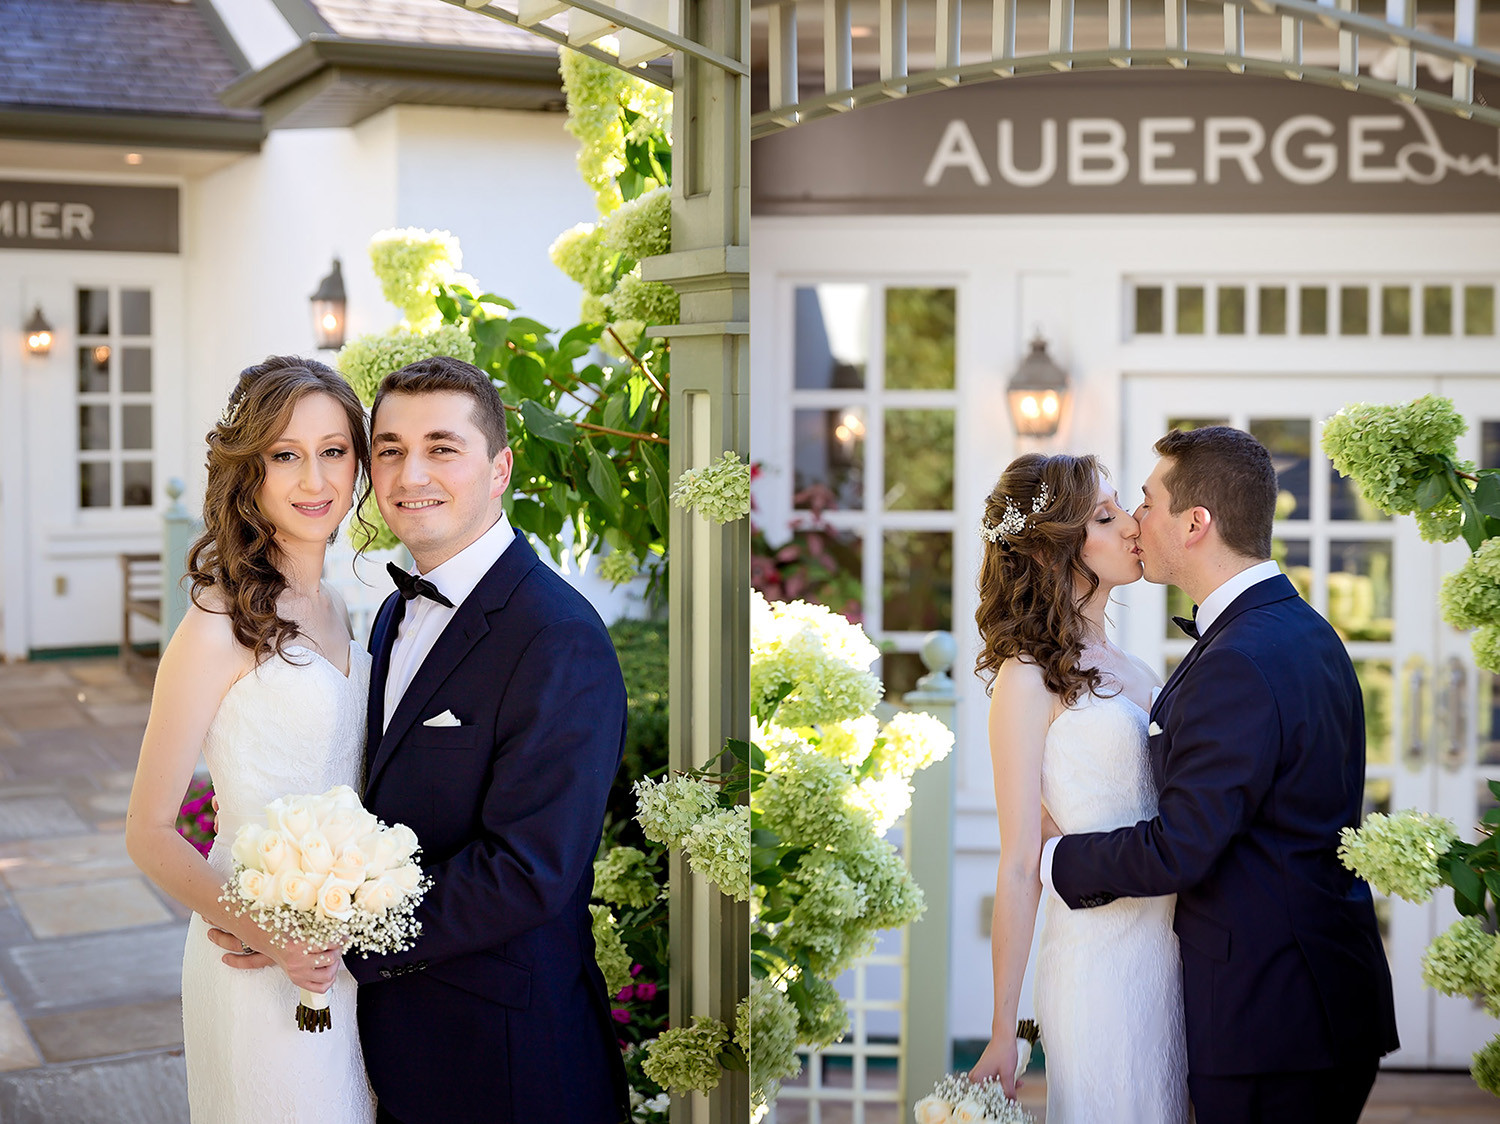 zohar-dmitry-auberge-du-pommier-wedding-4